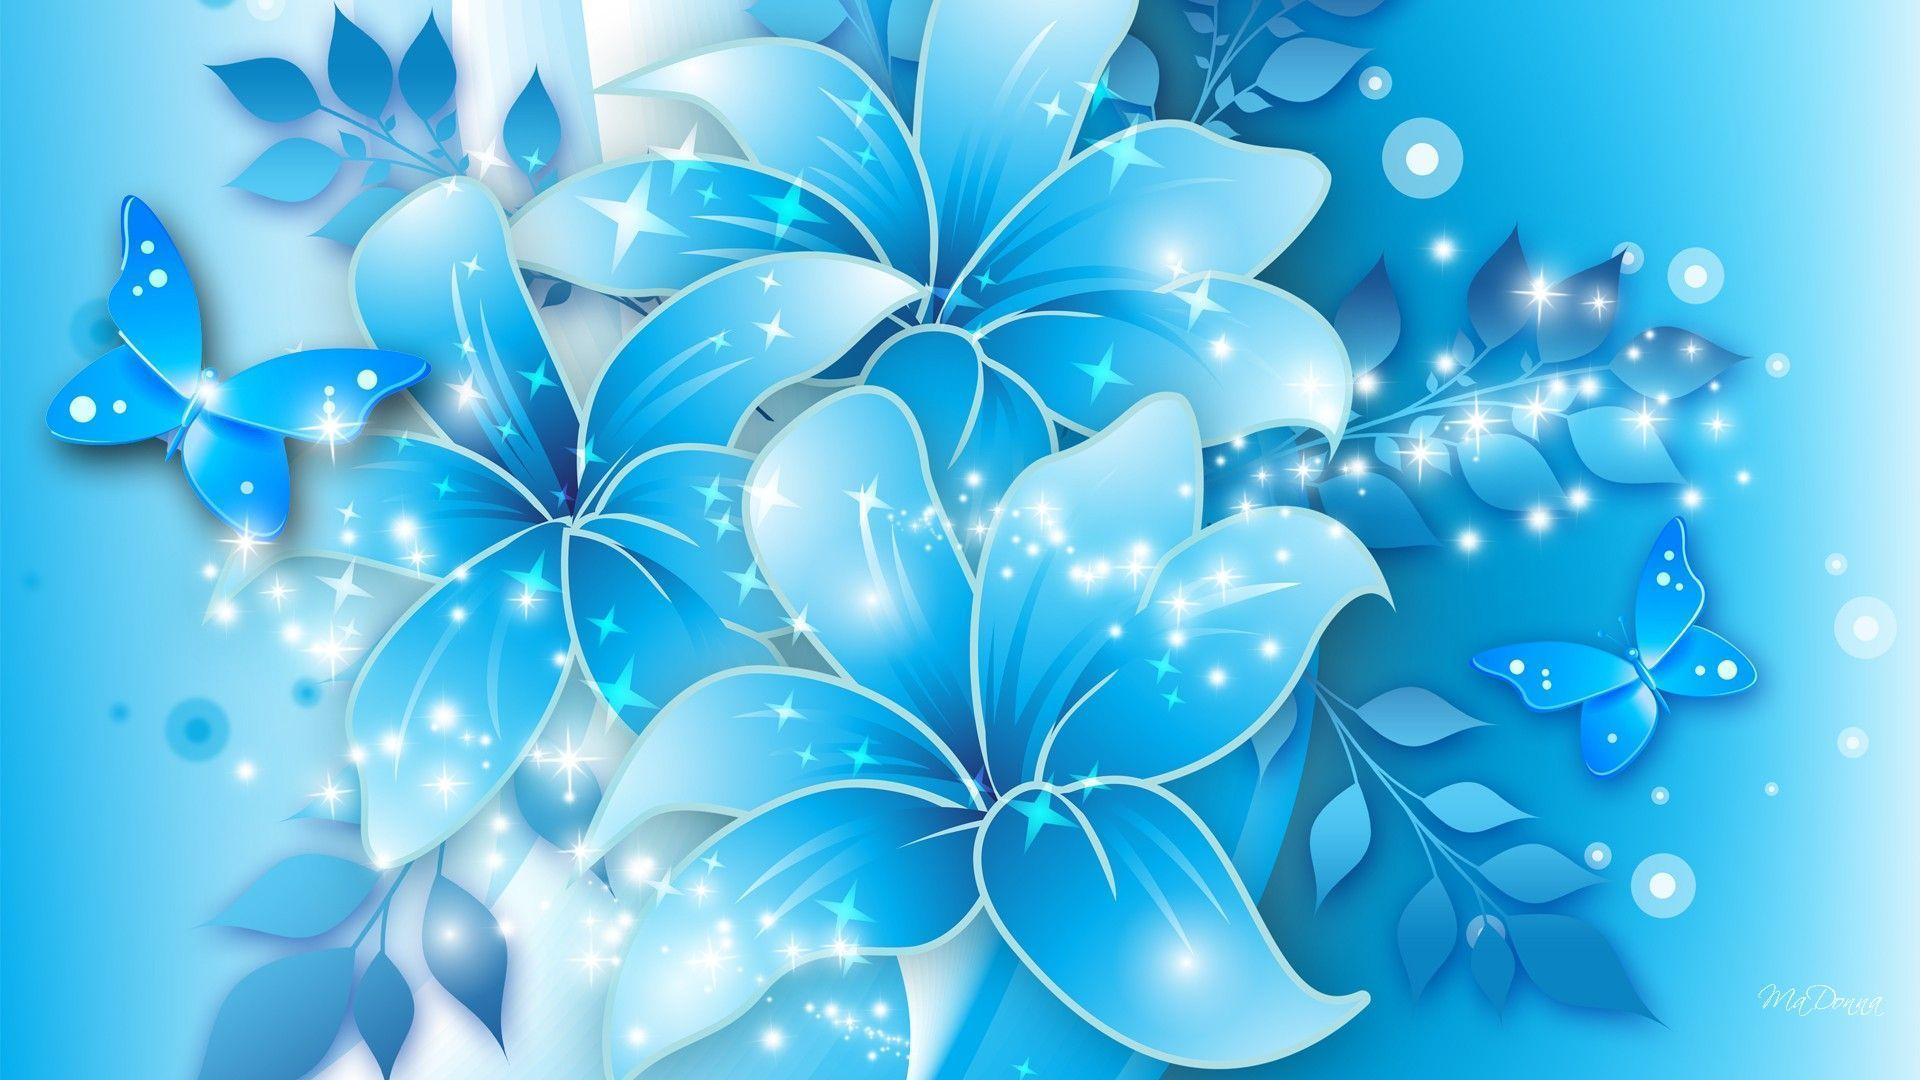 Blue Flower Backgrounds - Wallpaper Cave Light Blue Flower Wallpaper